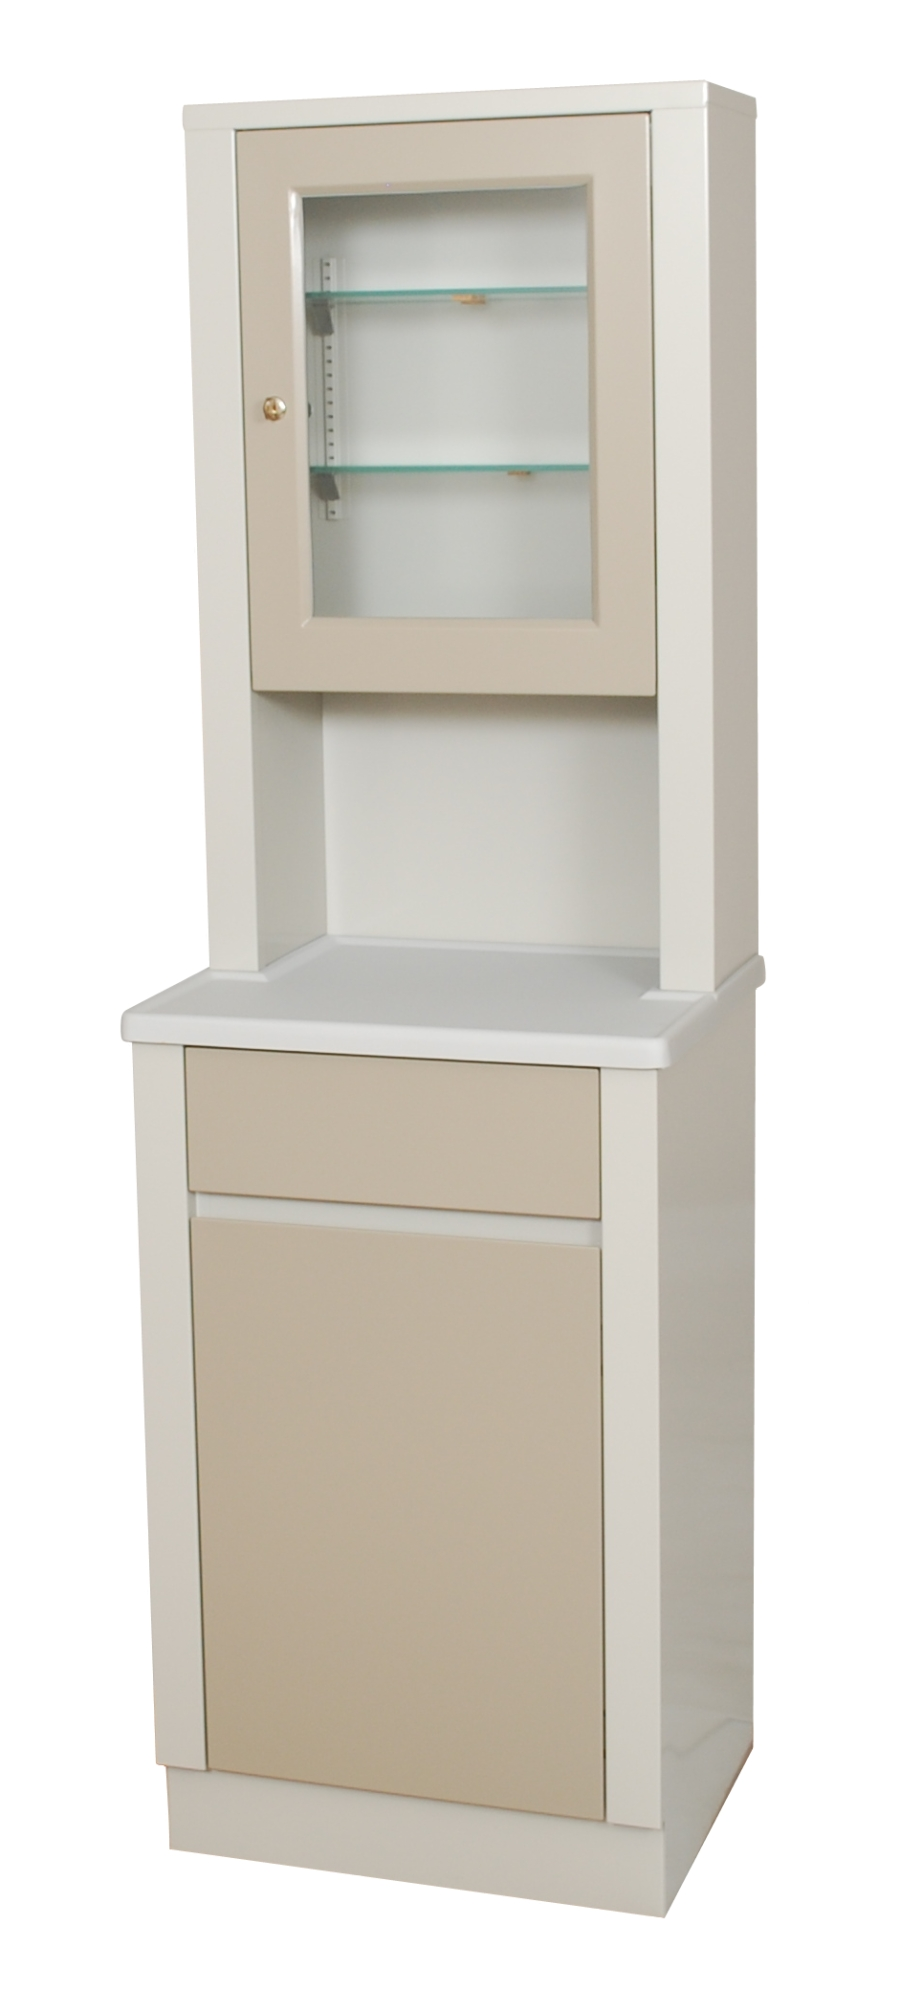 Modular Treatment Cabinet with Overhead Glass Cabinet